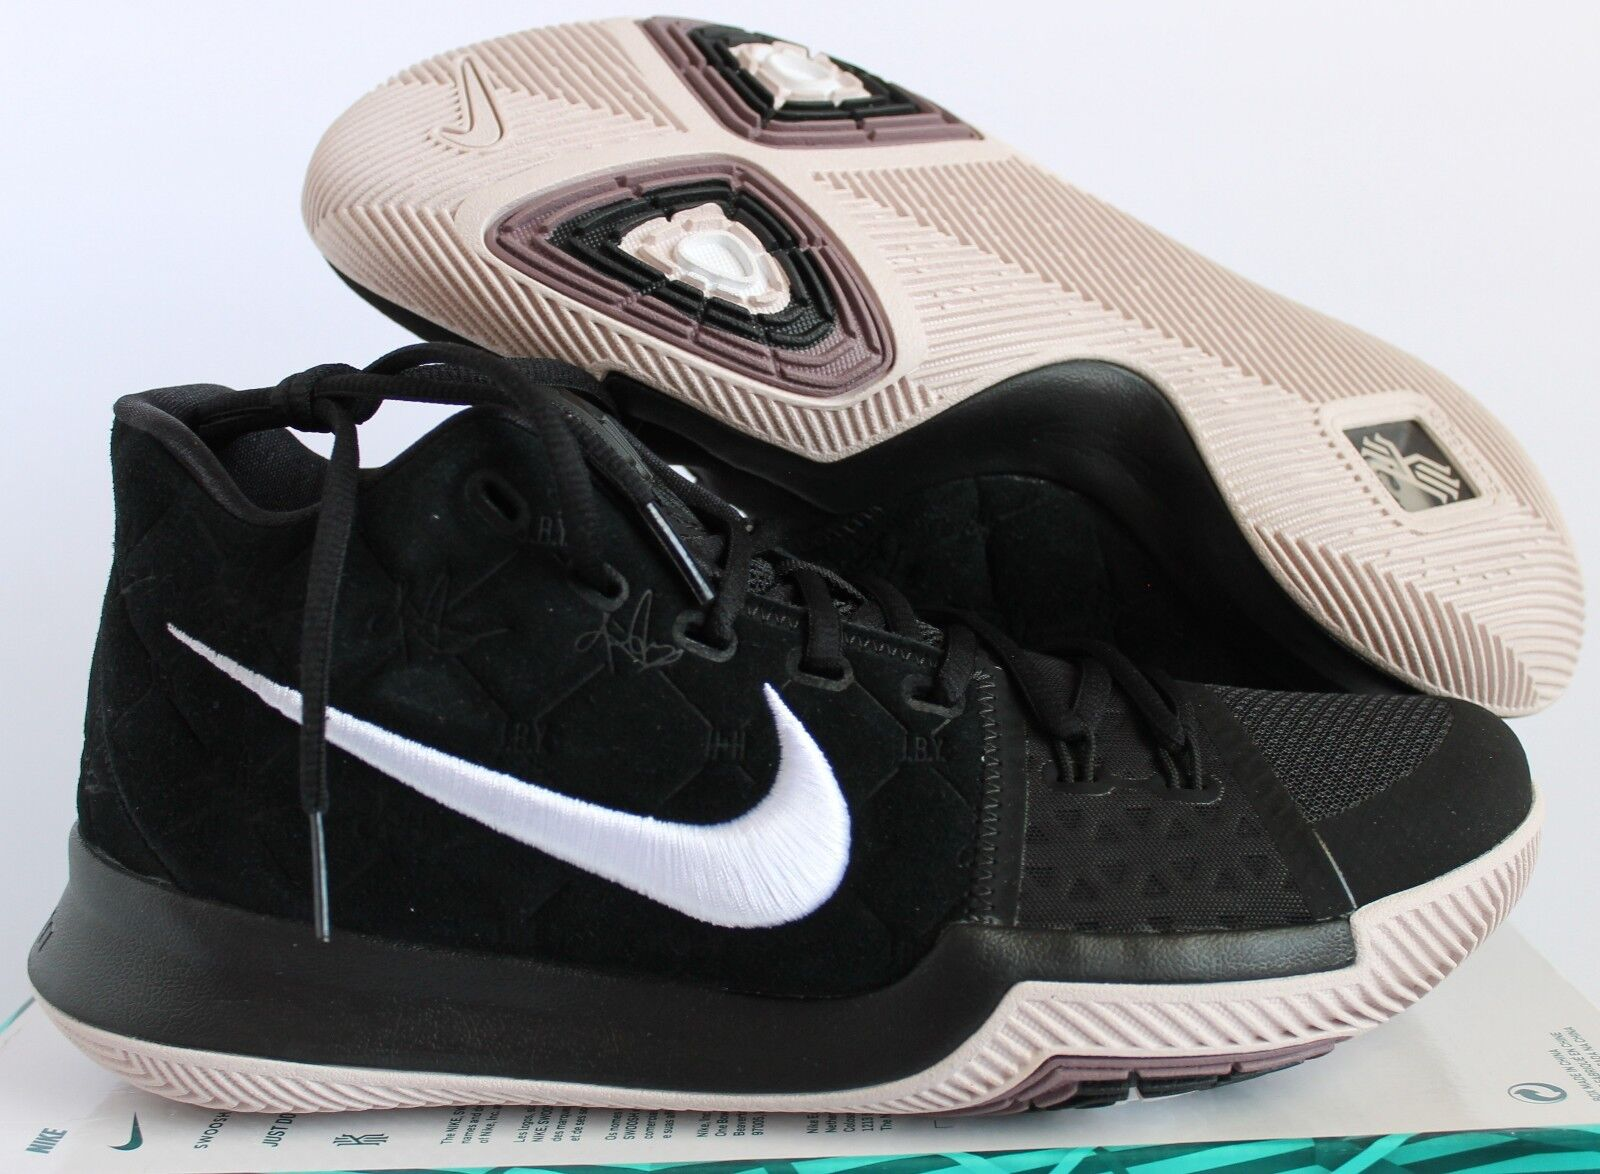 newest a95e5 df19d NIKE KYRIE 3 BLACK WHITE SILT RED MEN S SZ 8.5 8.5 8.5  852395-010